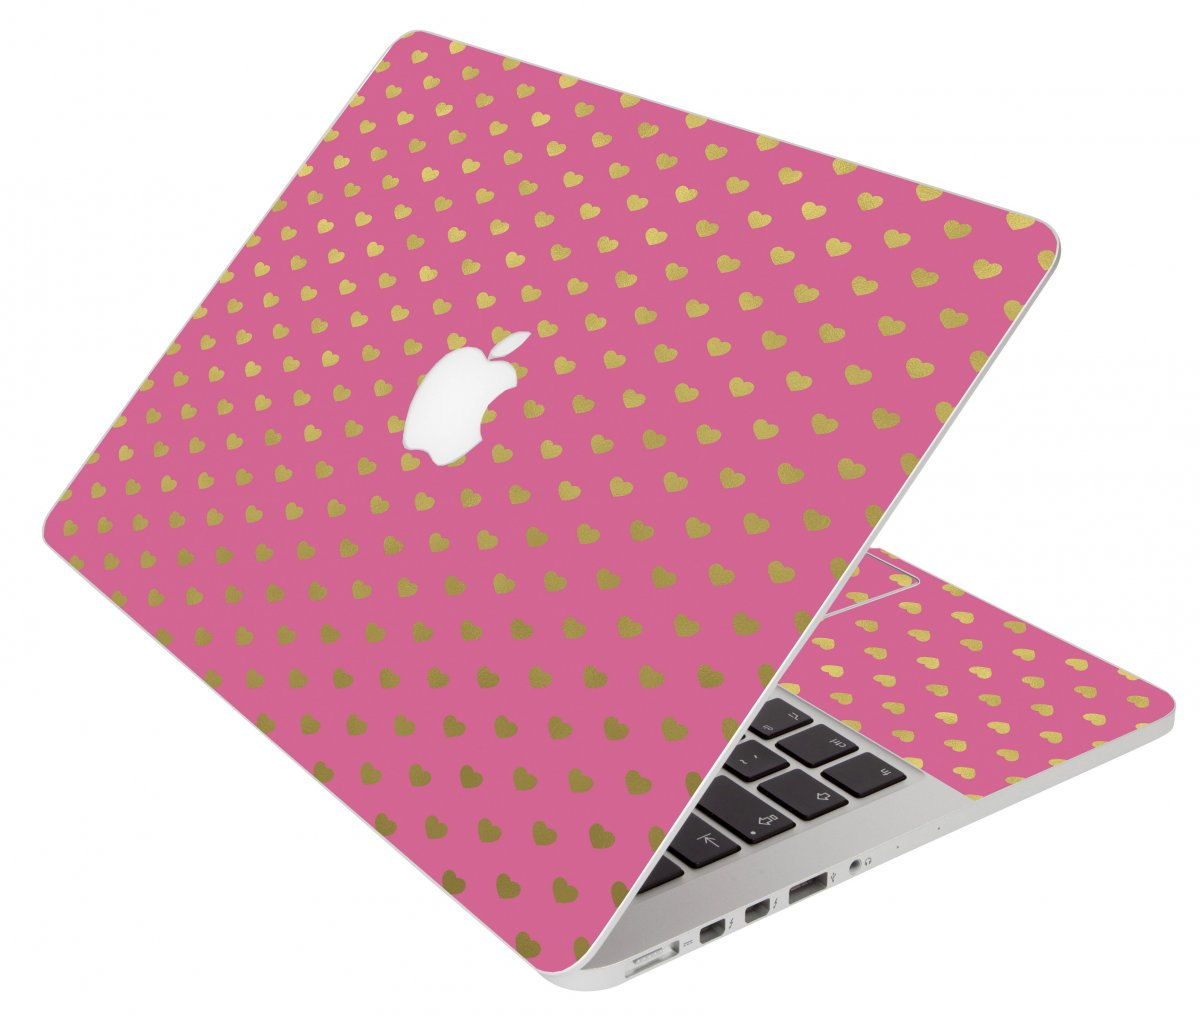 Pink With Gold Hearts Apple Macbook Pro 17 A1297  Laptop Skin